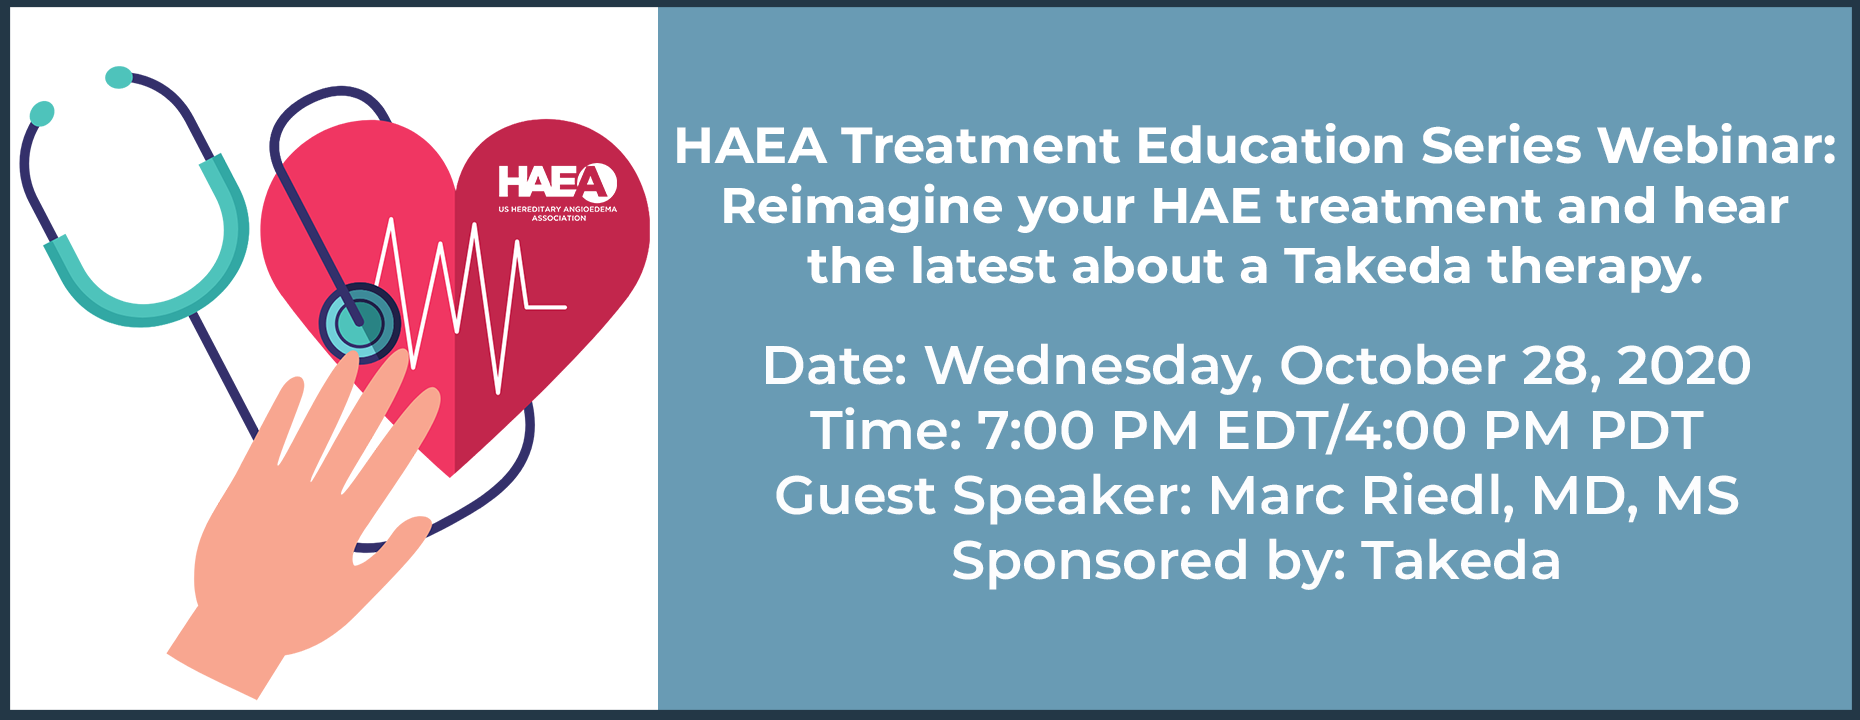 HAEA Treatment Education Series Webinar: Reimagine your HAE treatment and hear the latest about a Takeda therapy.